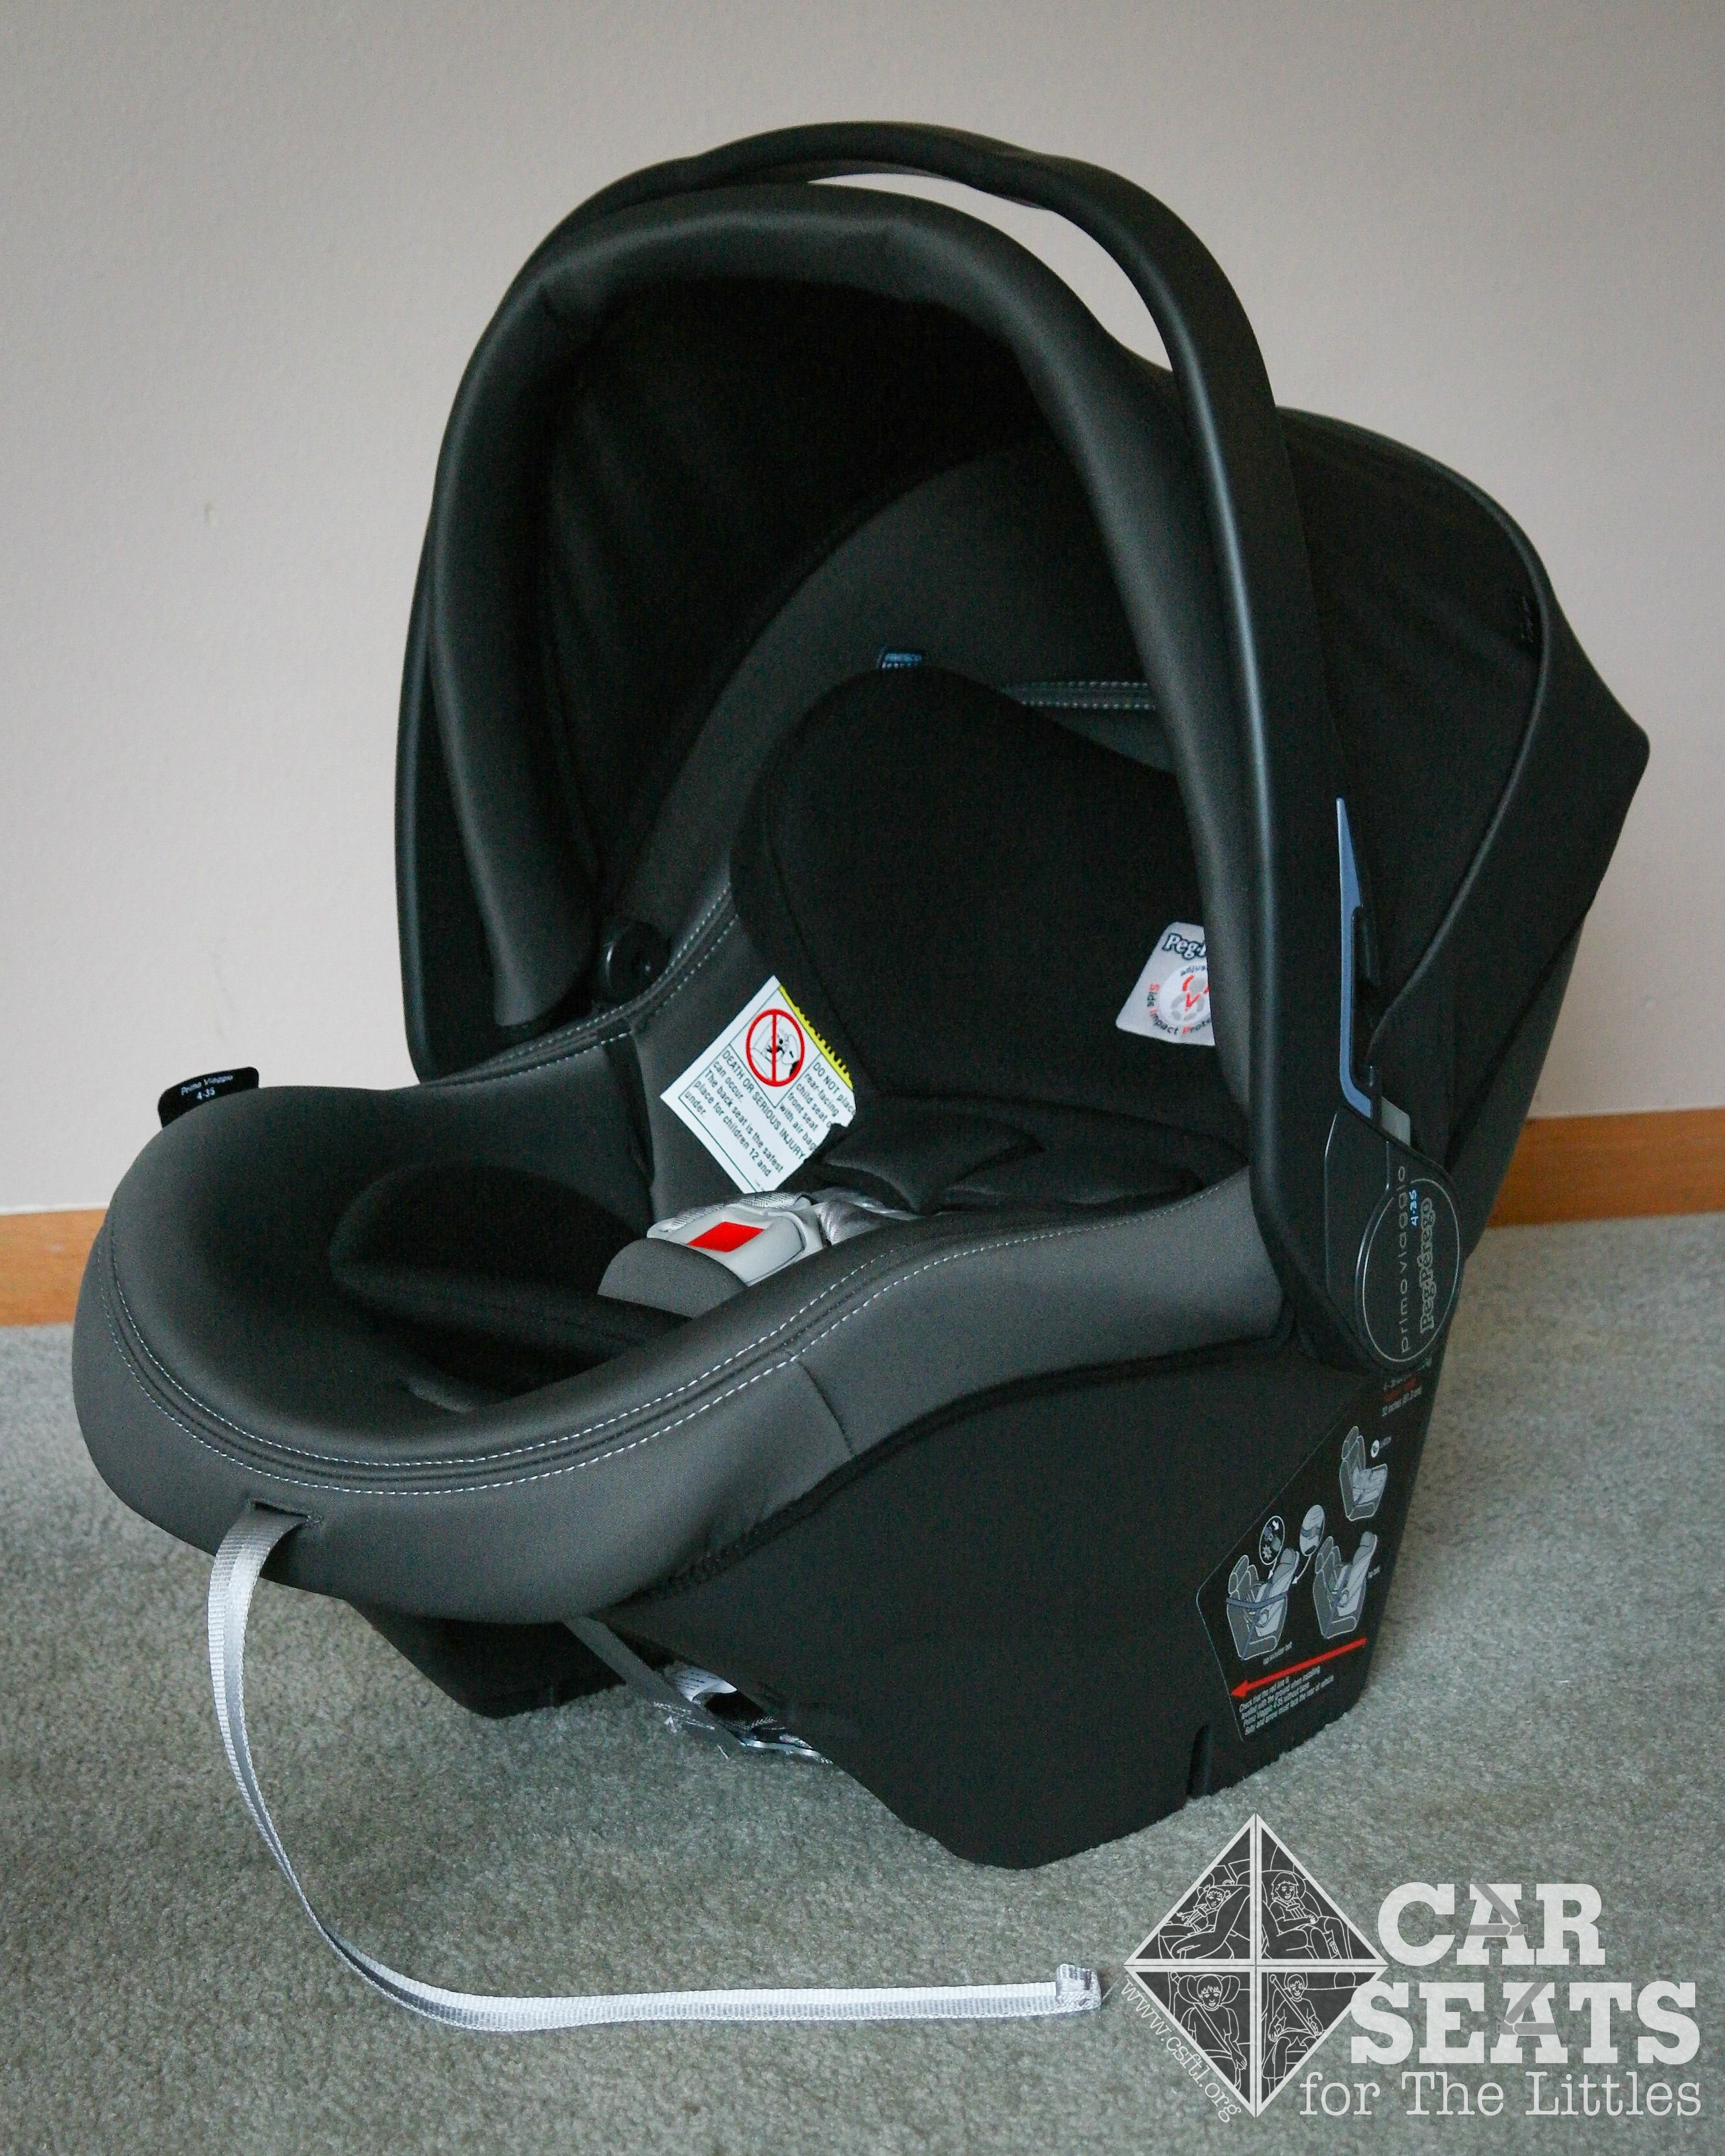 Pin by Car Seats For The Littles on Rear Facing Only Car